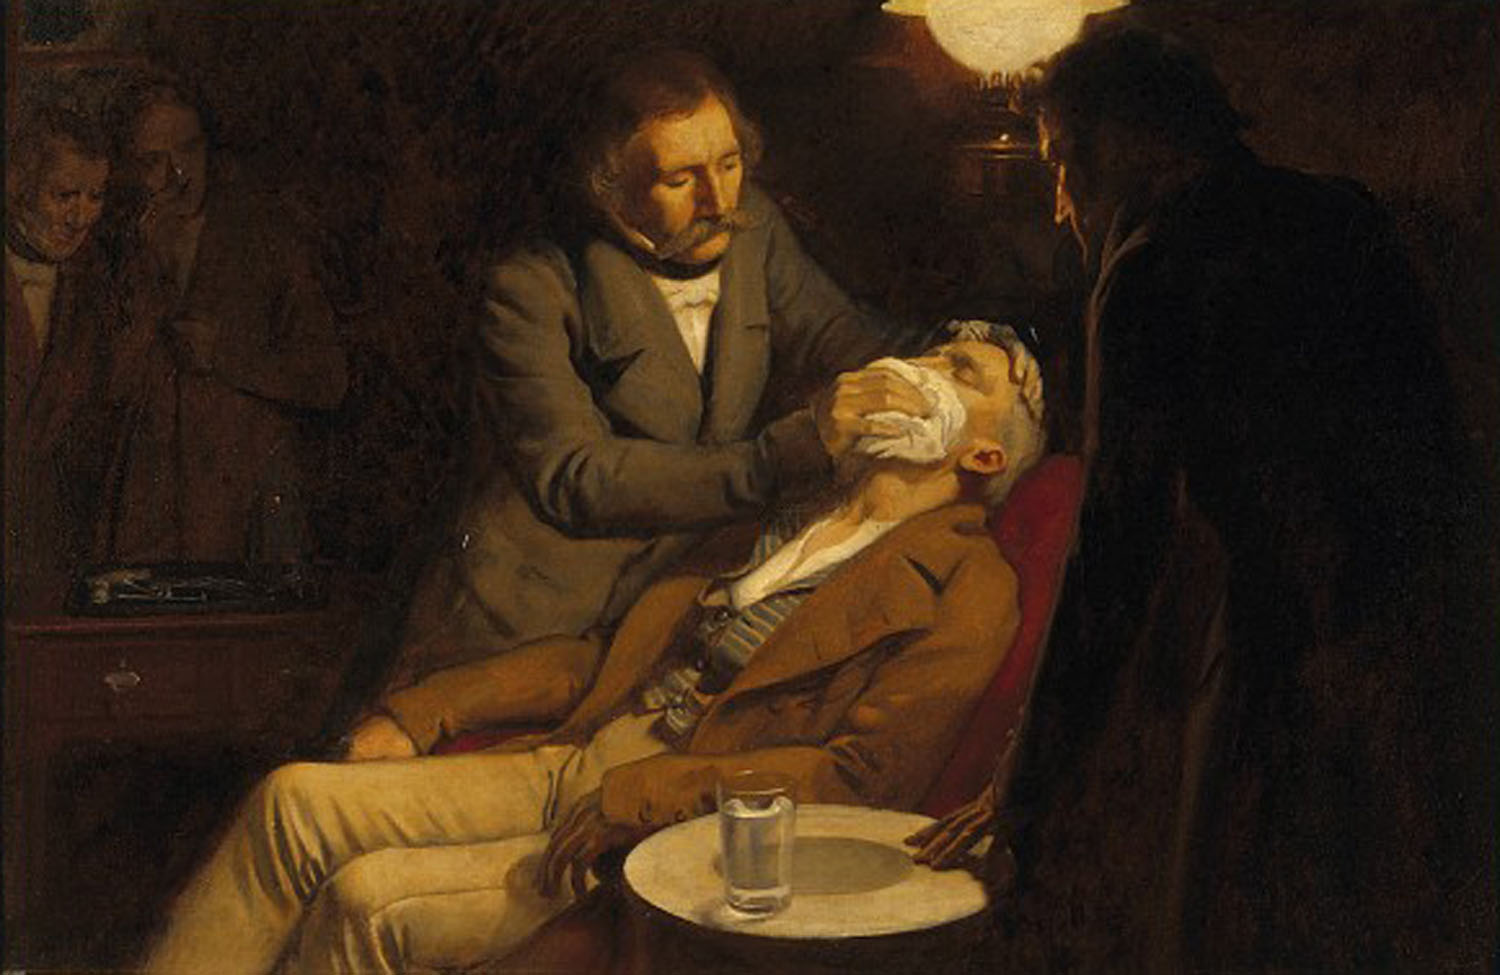 Oil painting depicting William Morton applying ether to a reclining patient in front of a small audience